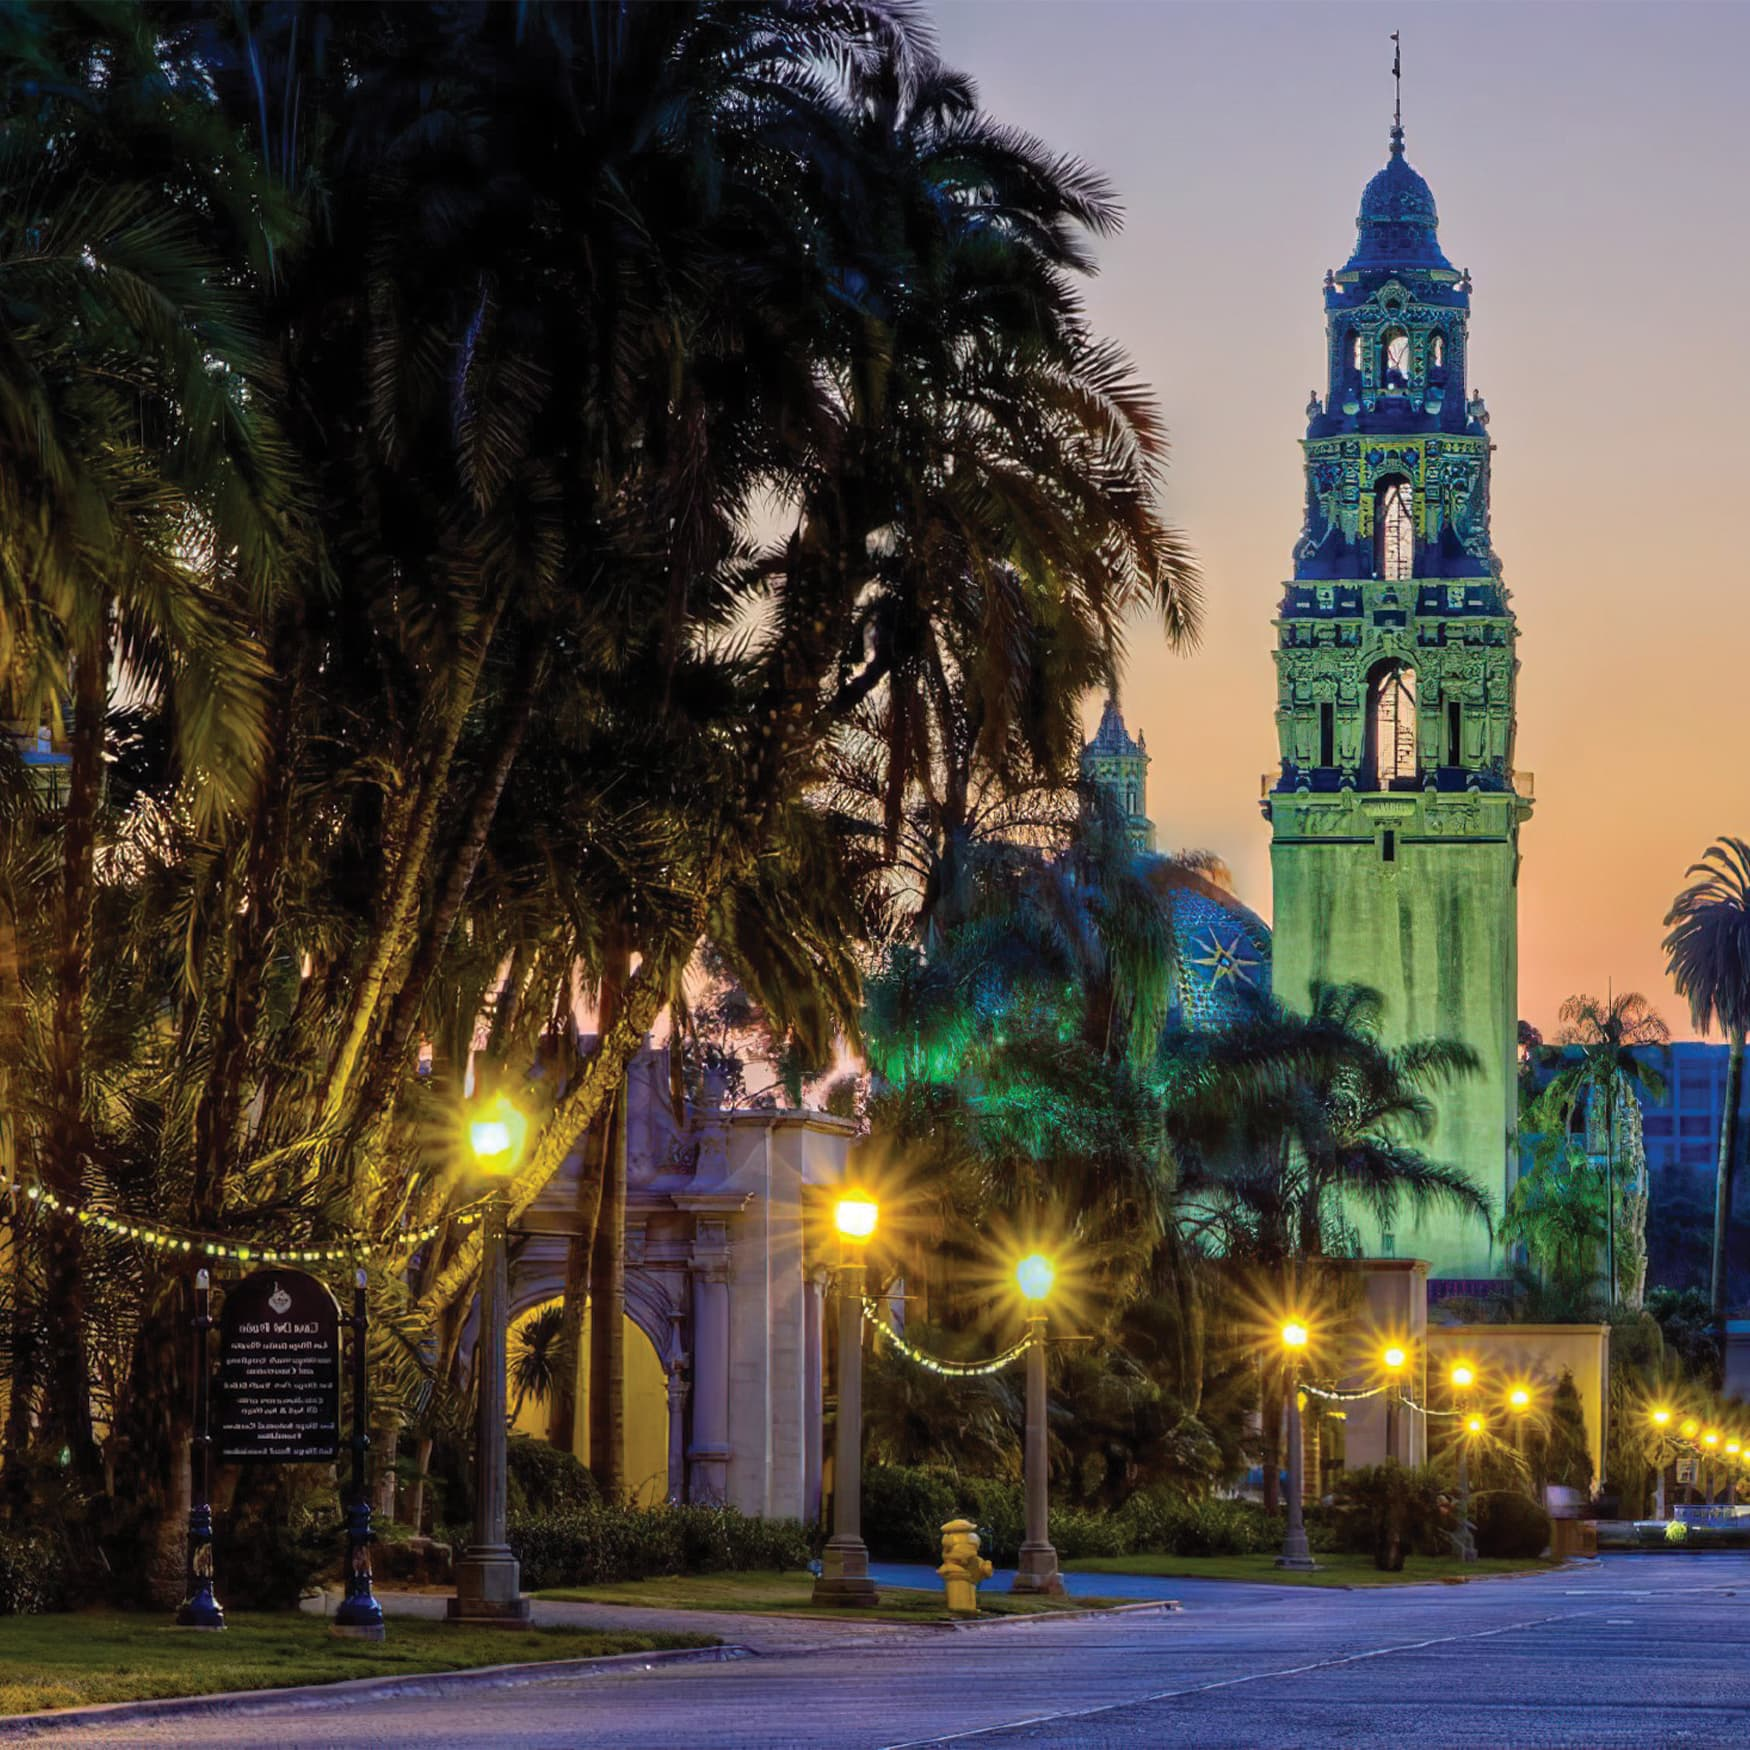 Historical church tower located in Balboa Park, San Diego